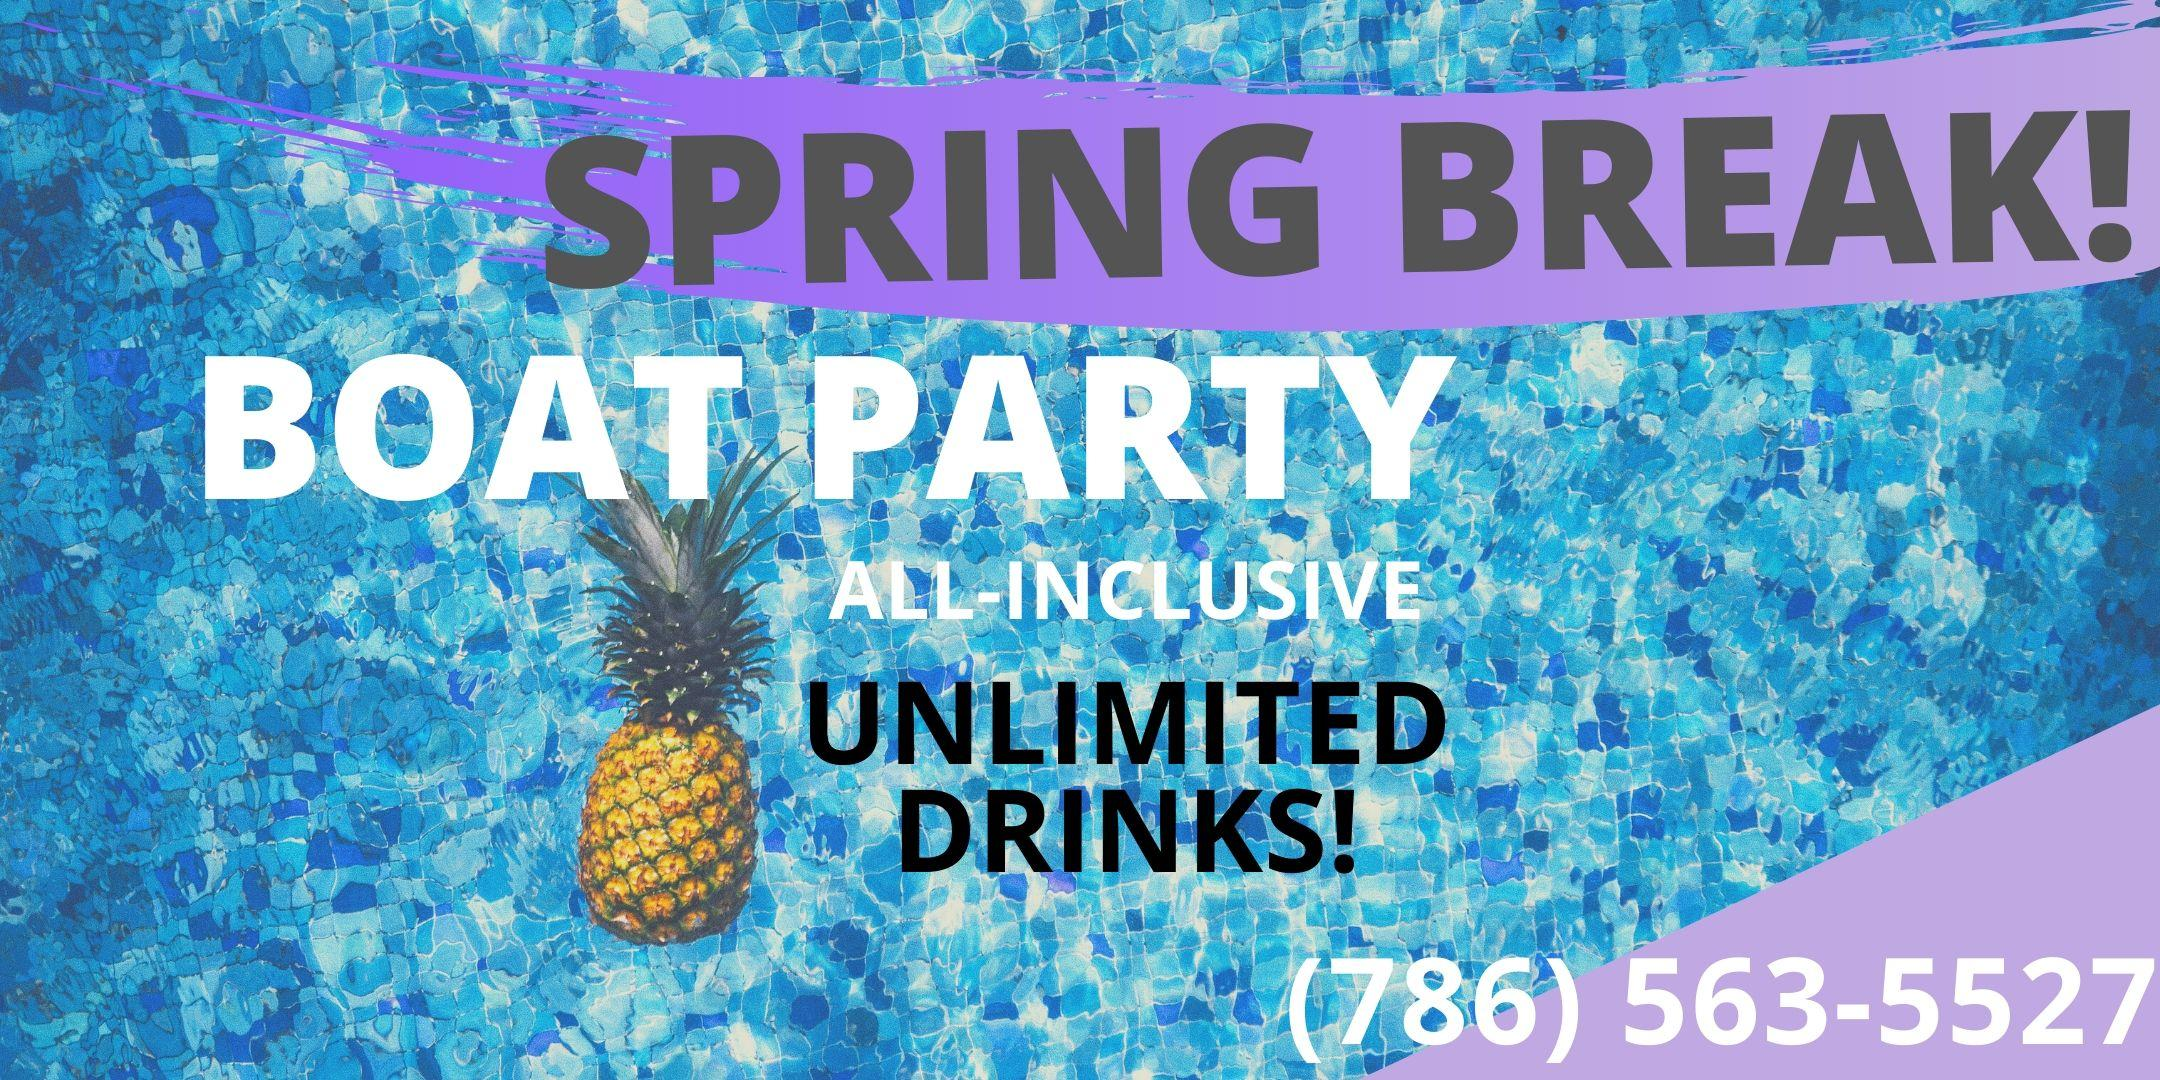 #BOAT PARTY! :) All Inclusive!